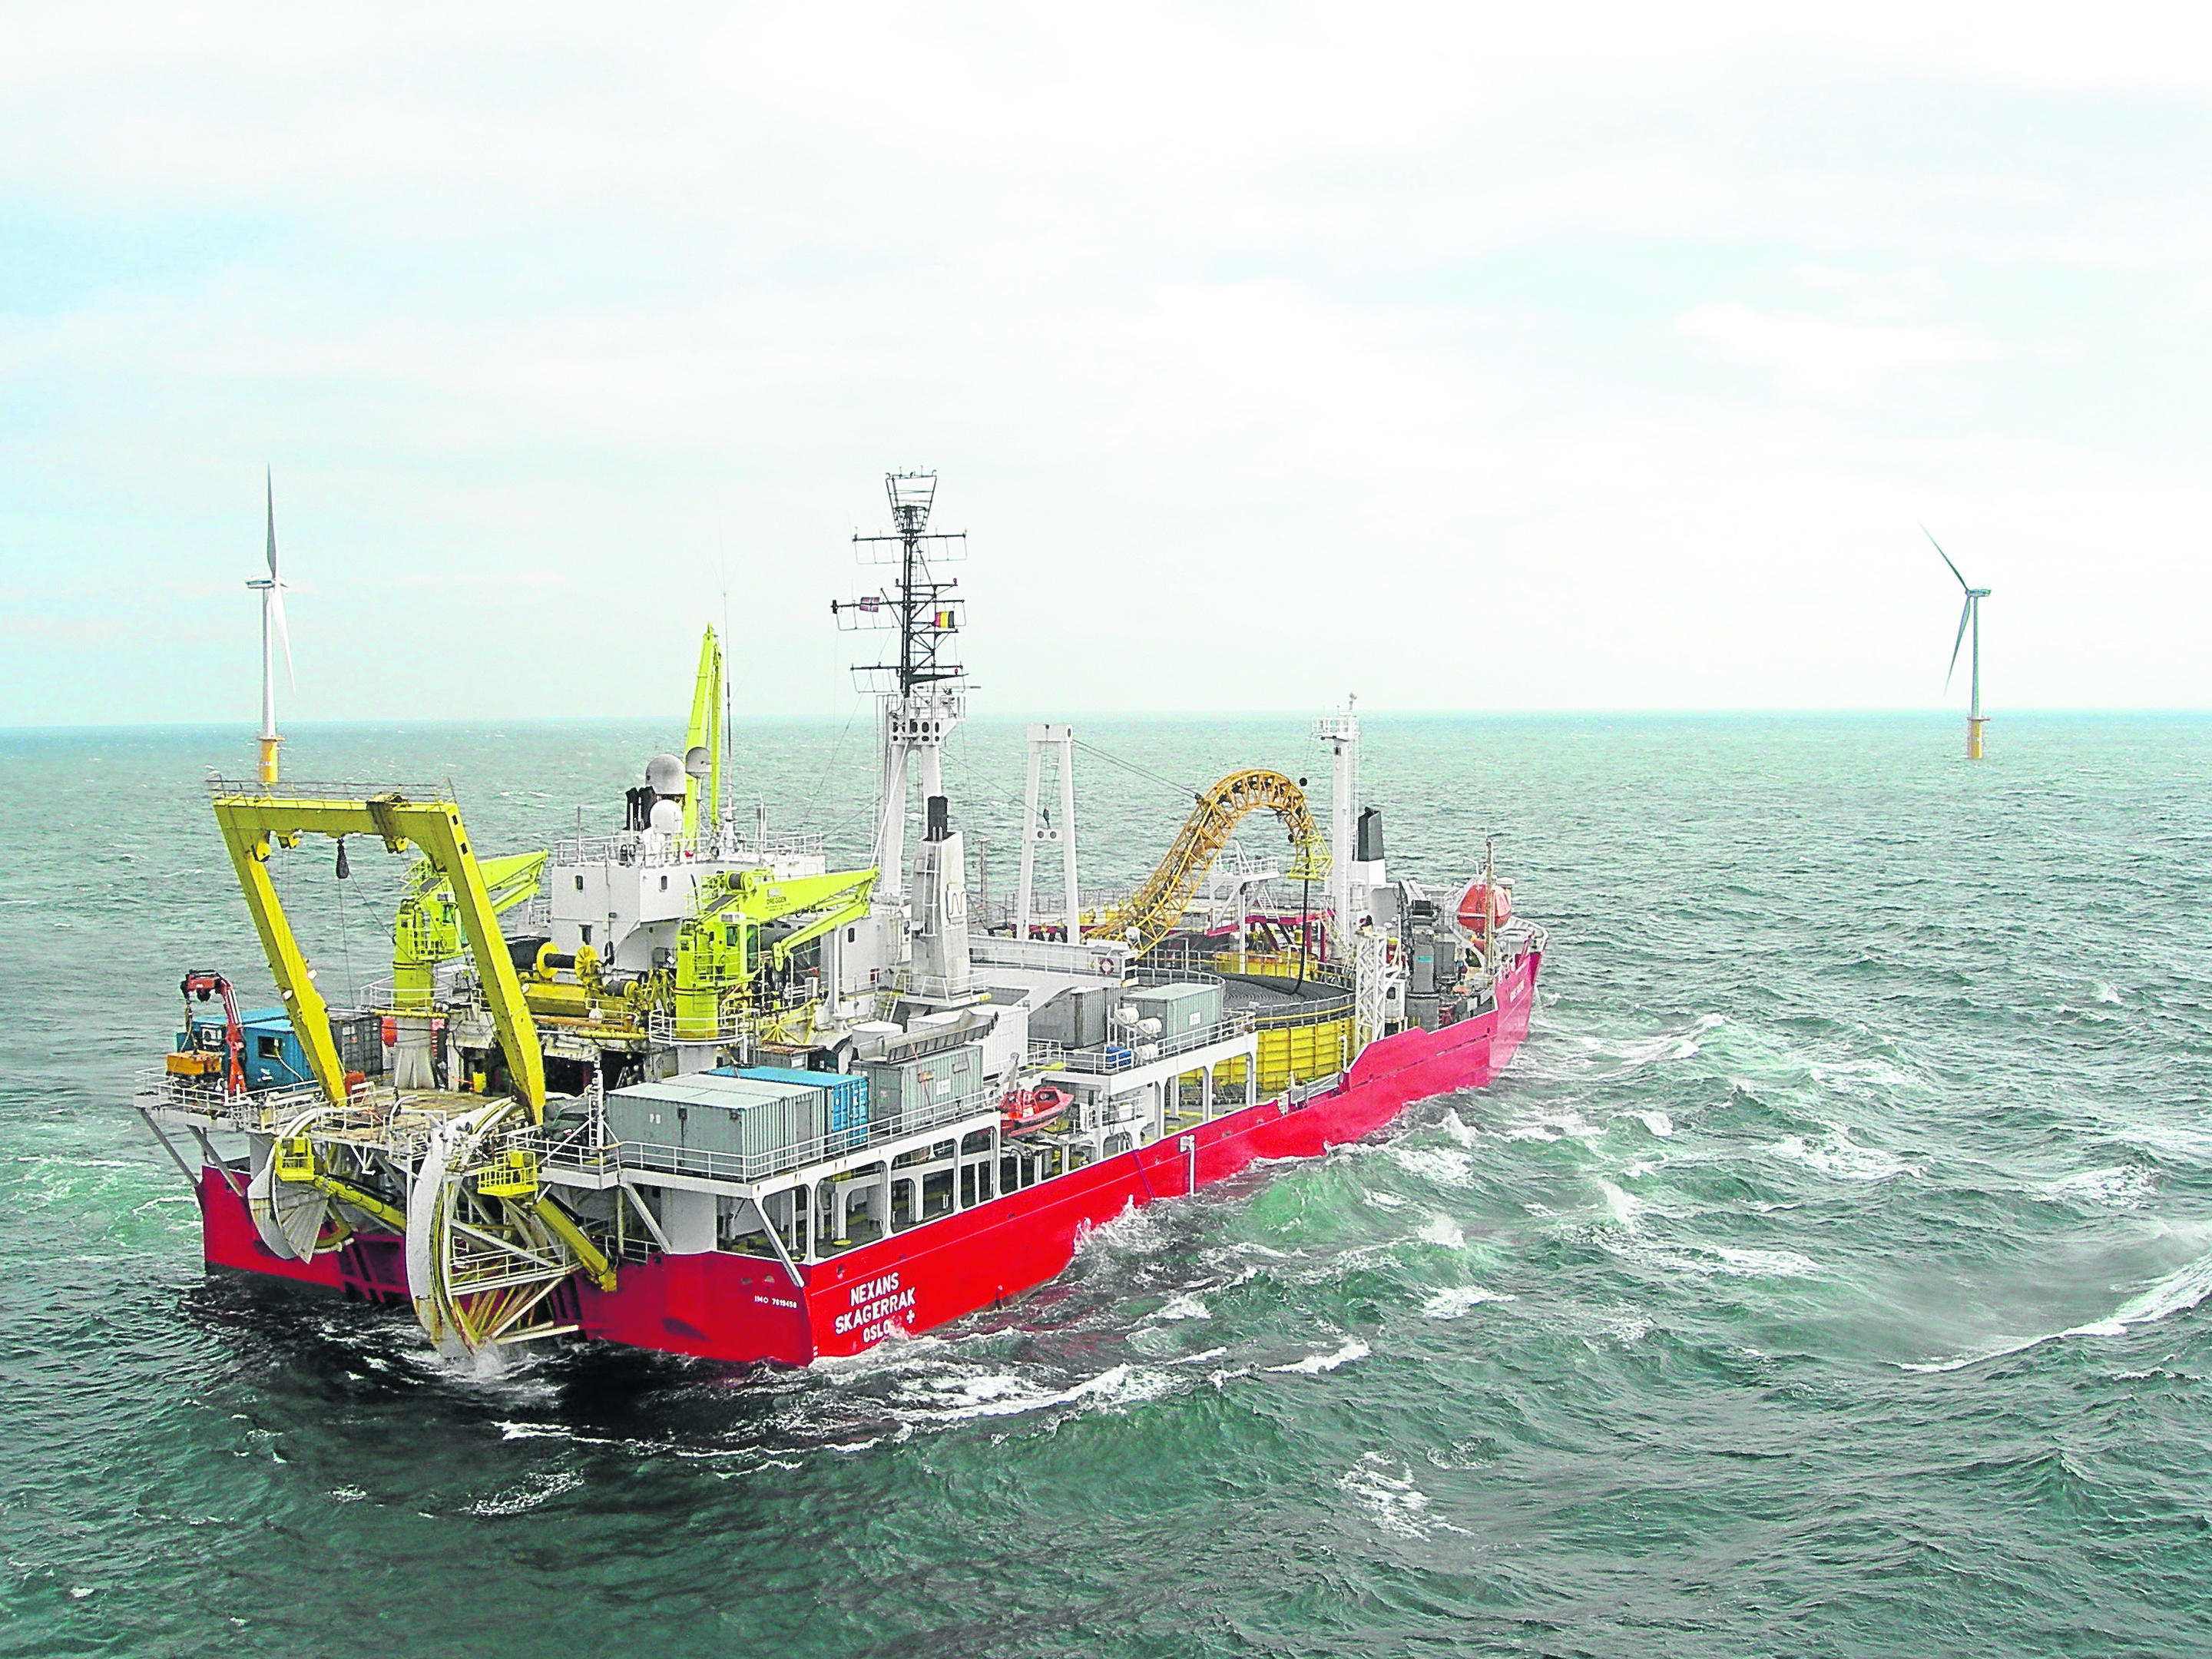 The Skagerrak cable laying vessel.